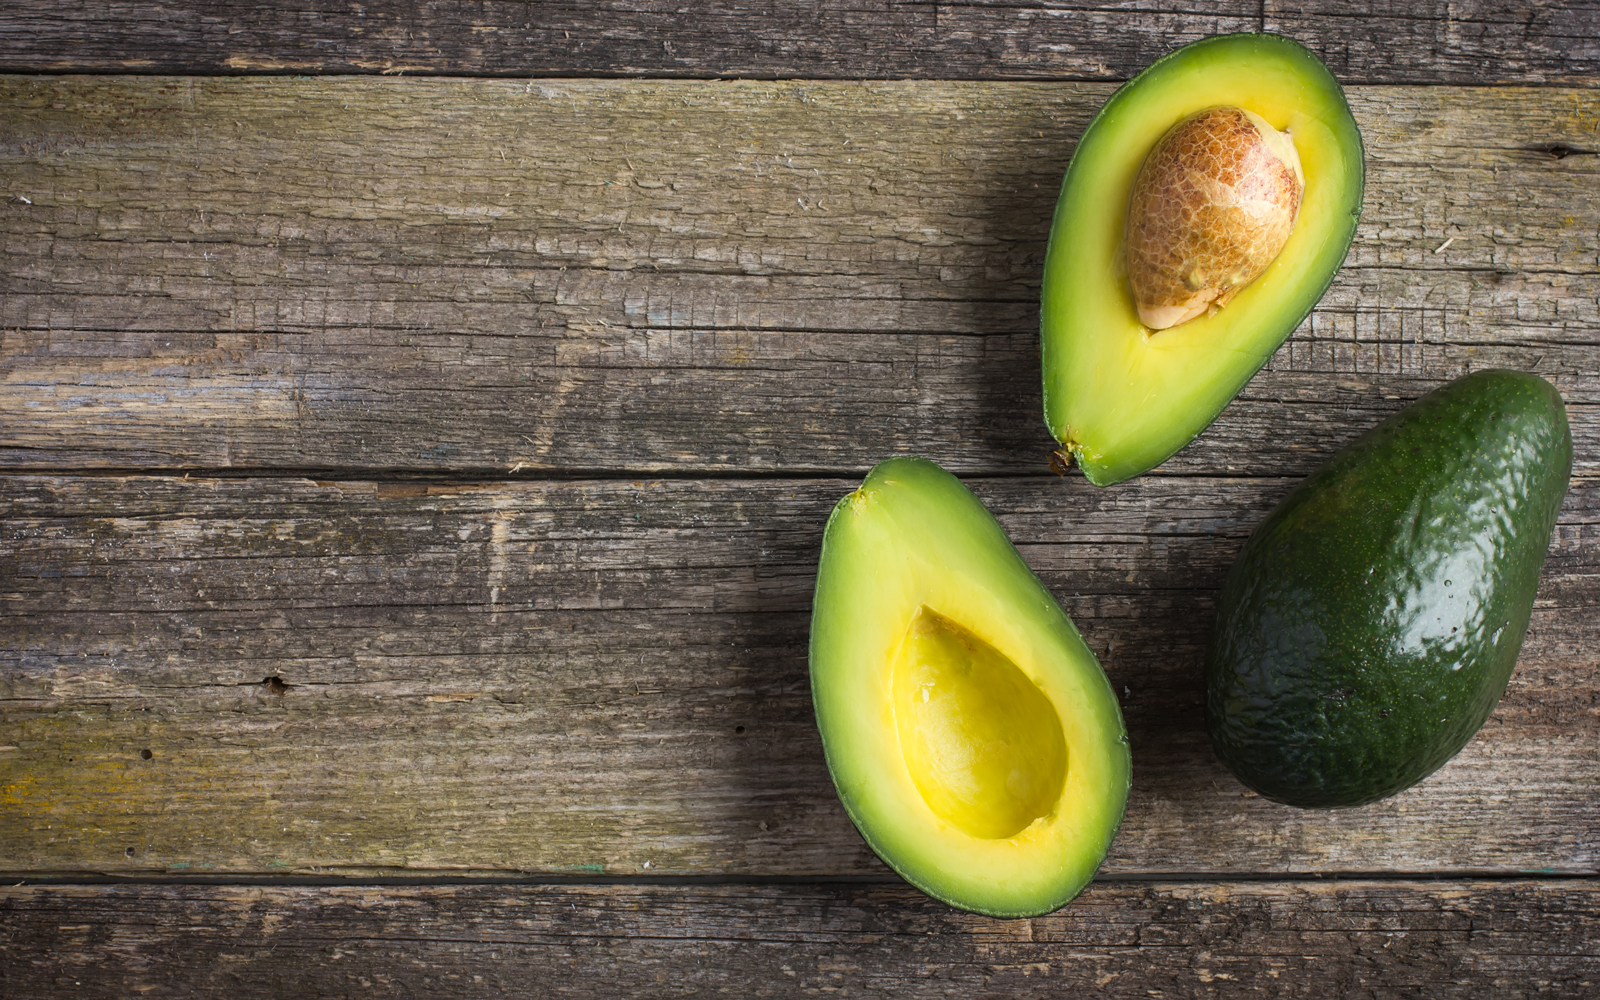 This London Restaurant Is Officially Banning Avocados From Its Menu